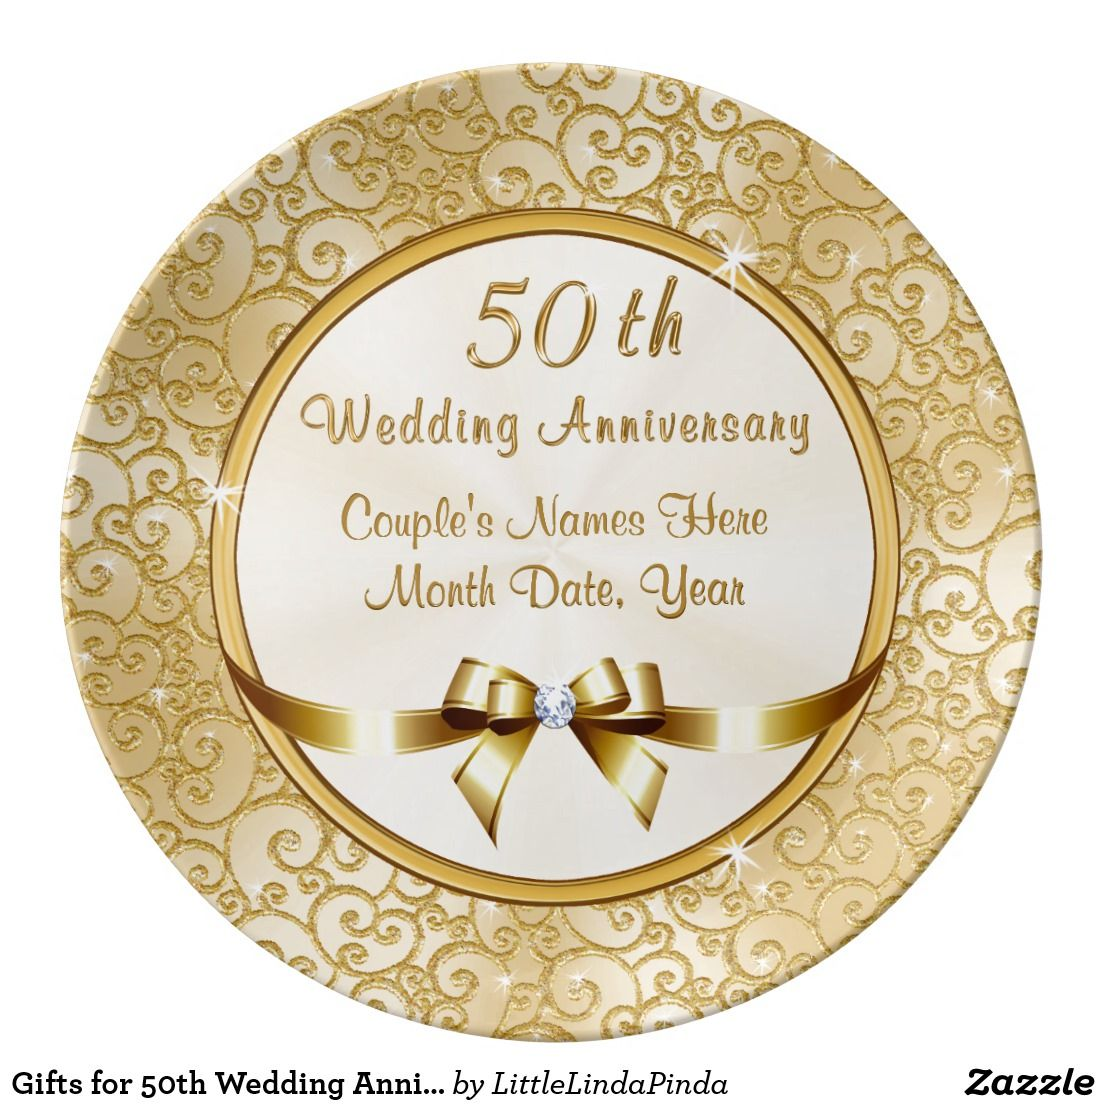 Gifts For 50th Wedding Anniversary For Friends Dinner Plate Zazzle Com Golden Wedding Anniversary Gifts 50th Wedding Anniversary 50th Anniversary Gifts